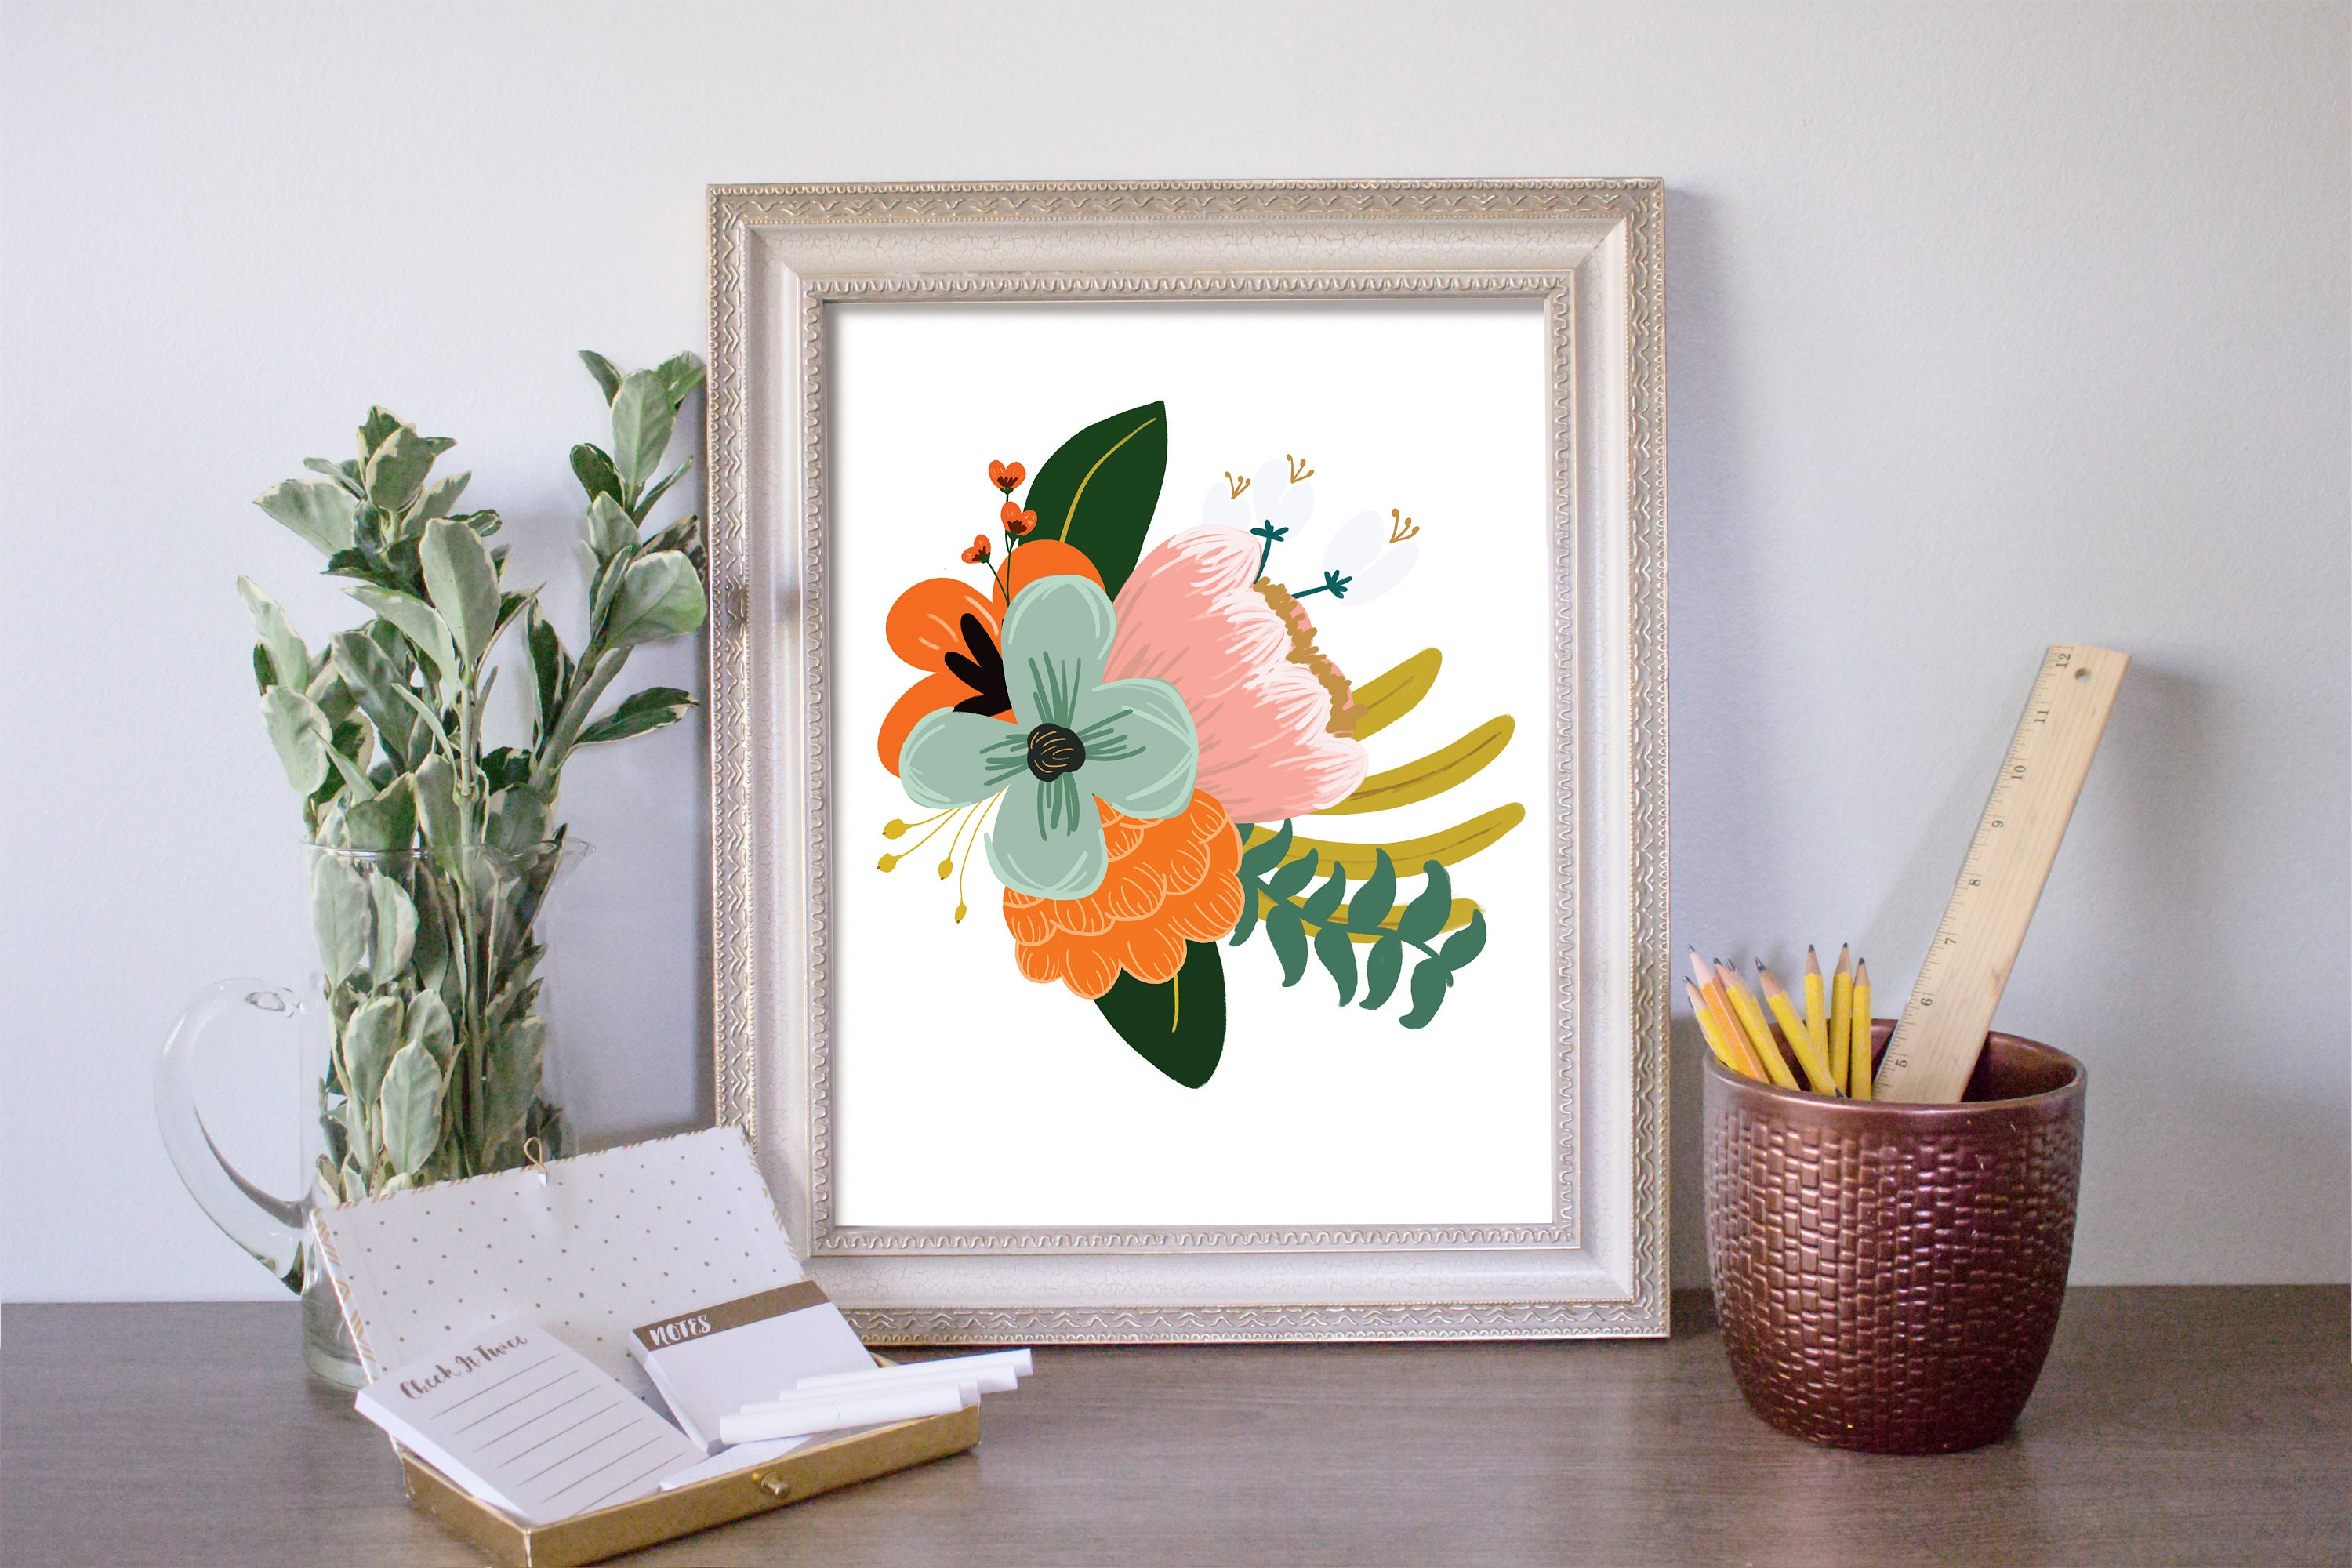 Blush And Mint Floral Wall Art Floral Art Print Floral Wall Etsy - Decorative-floral-print-chairs-from-floral-art